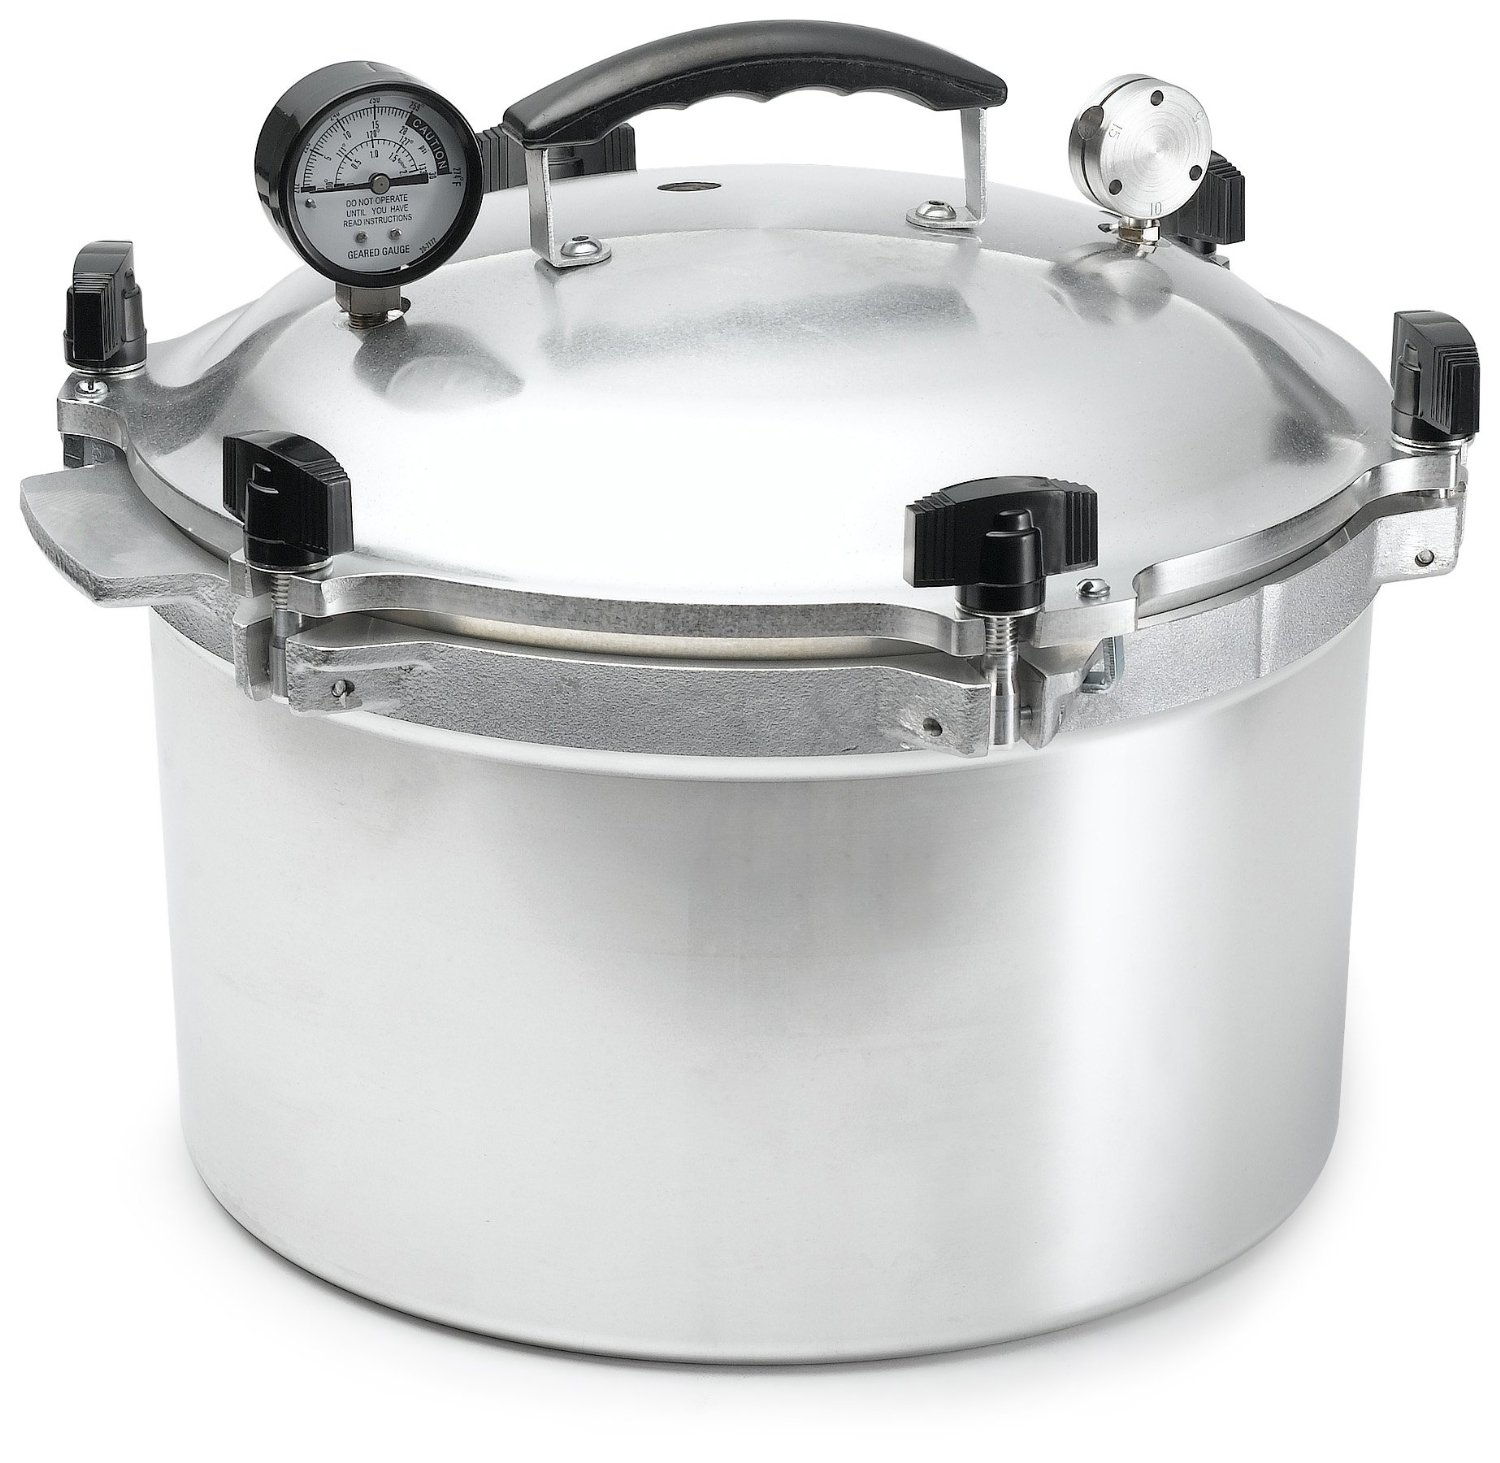 Pressure cooker canning; Investments that save money